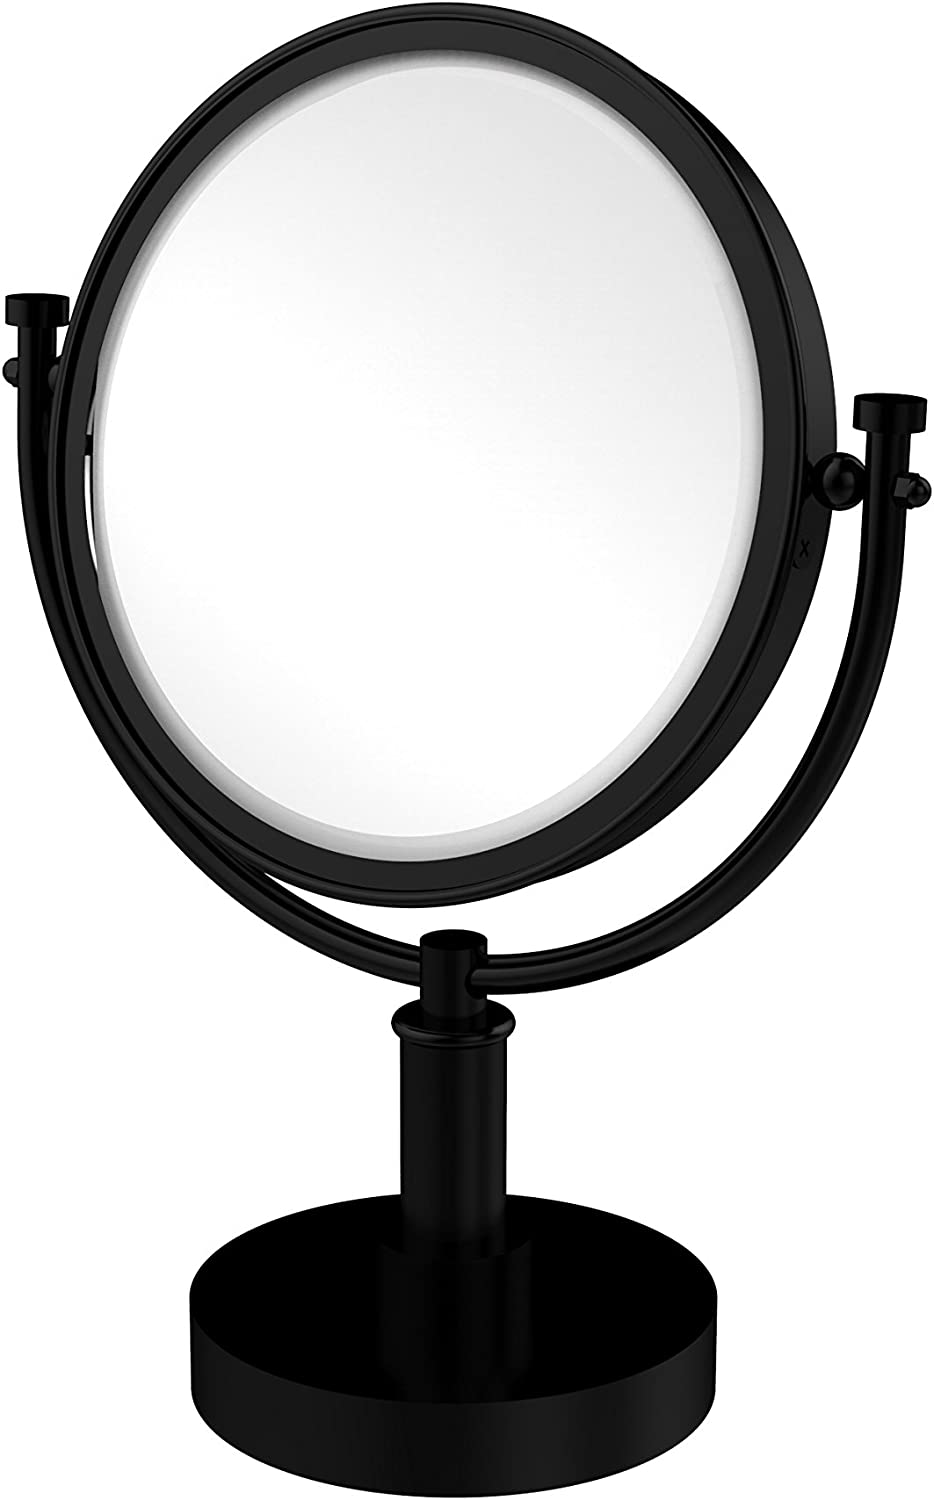 Allied Brass DM-4 4X-ORB Oil Rubbed Bronze Universal 8  Table Mirror 4x Magnification from the Universal Collection